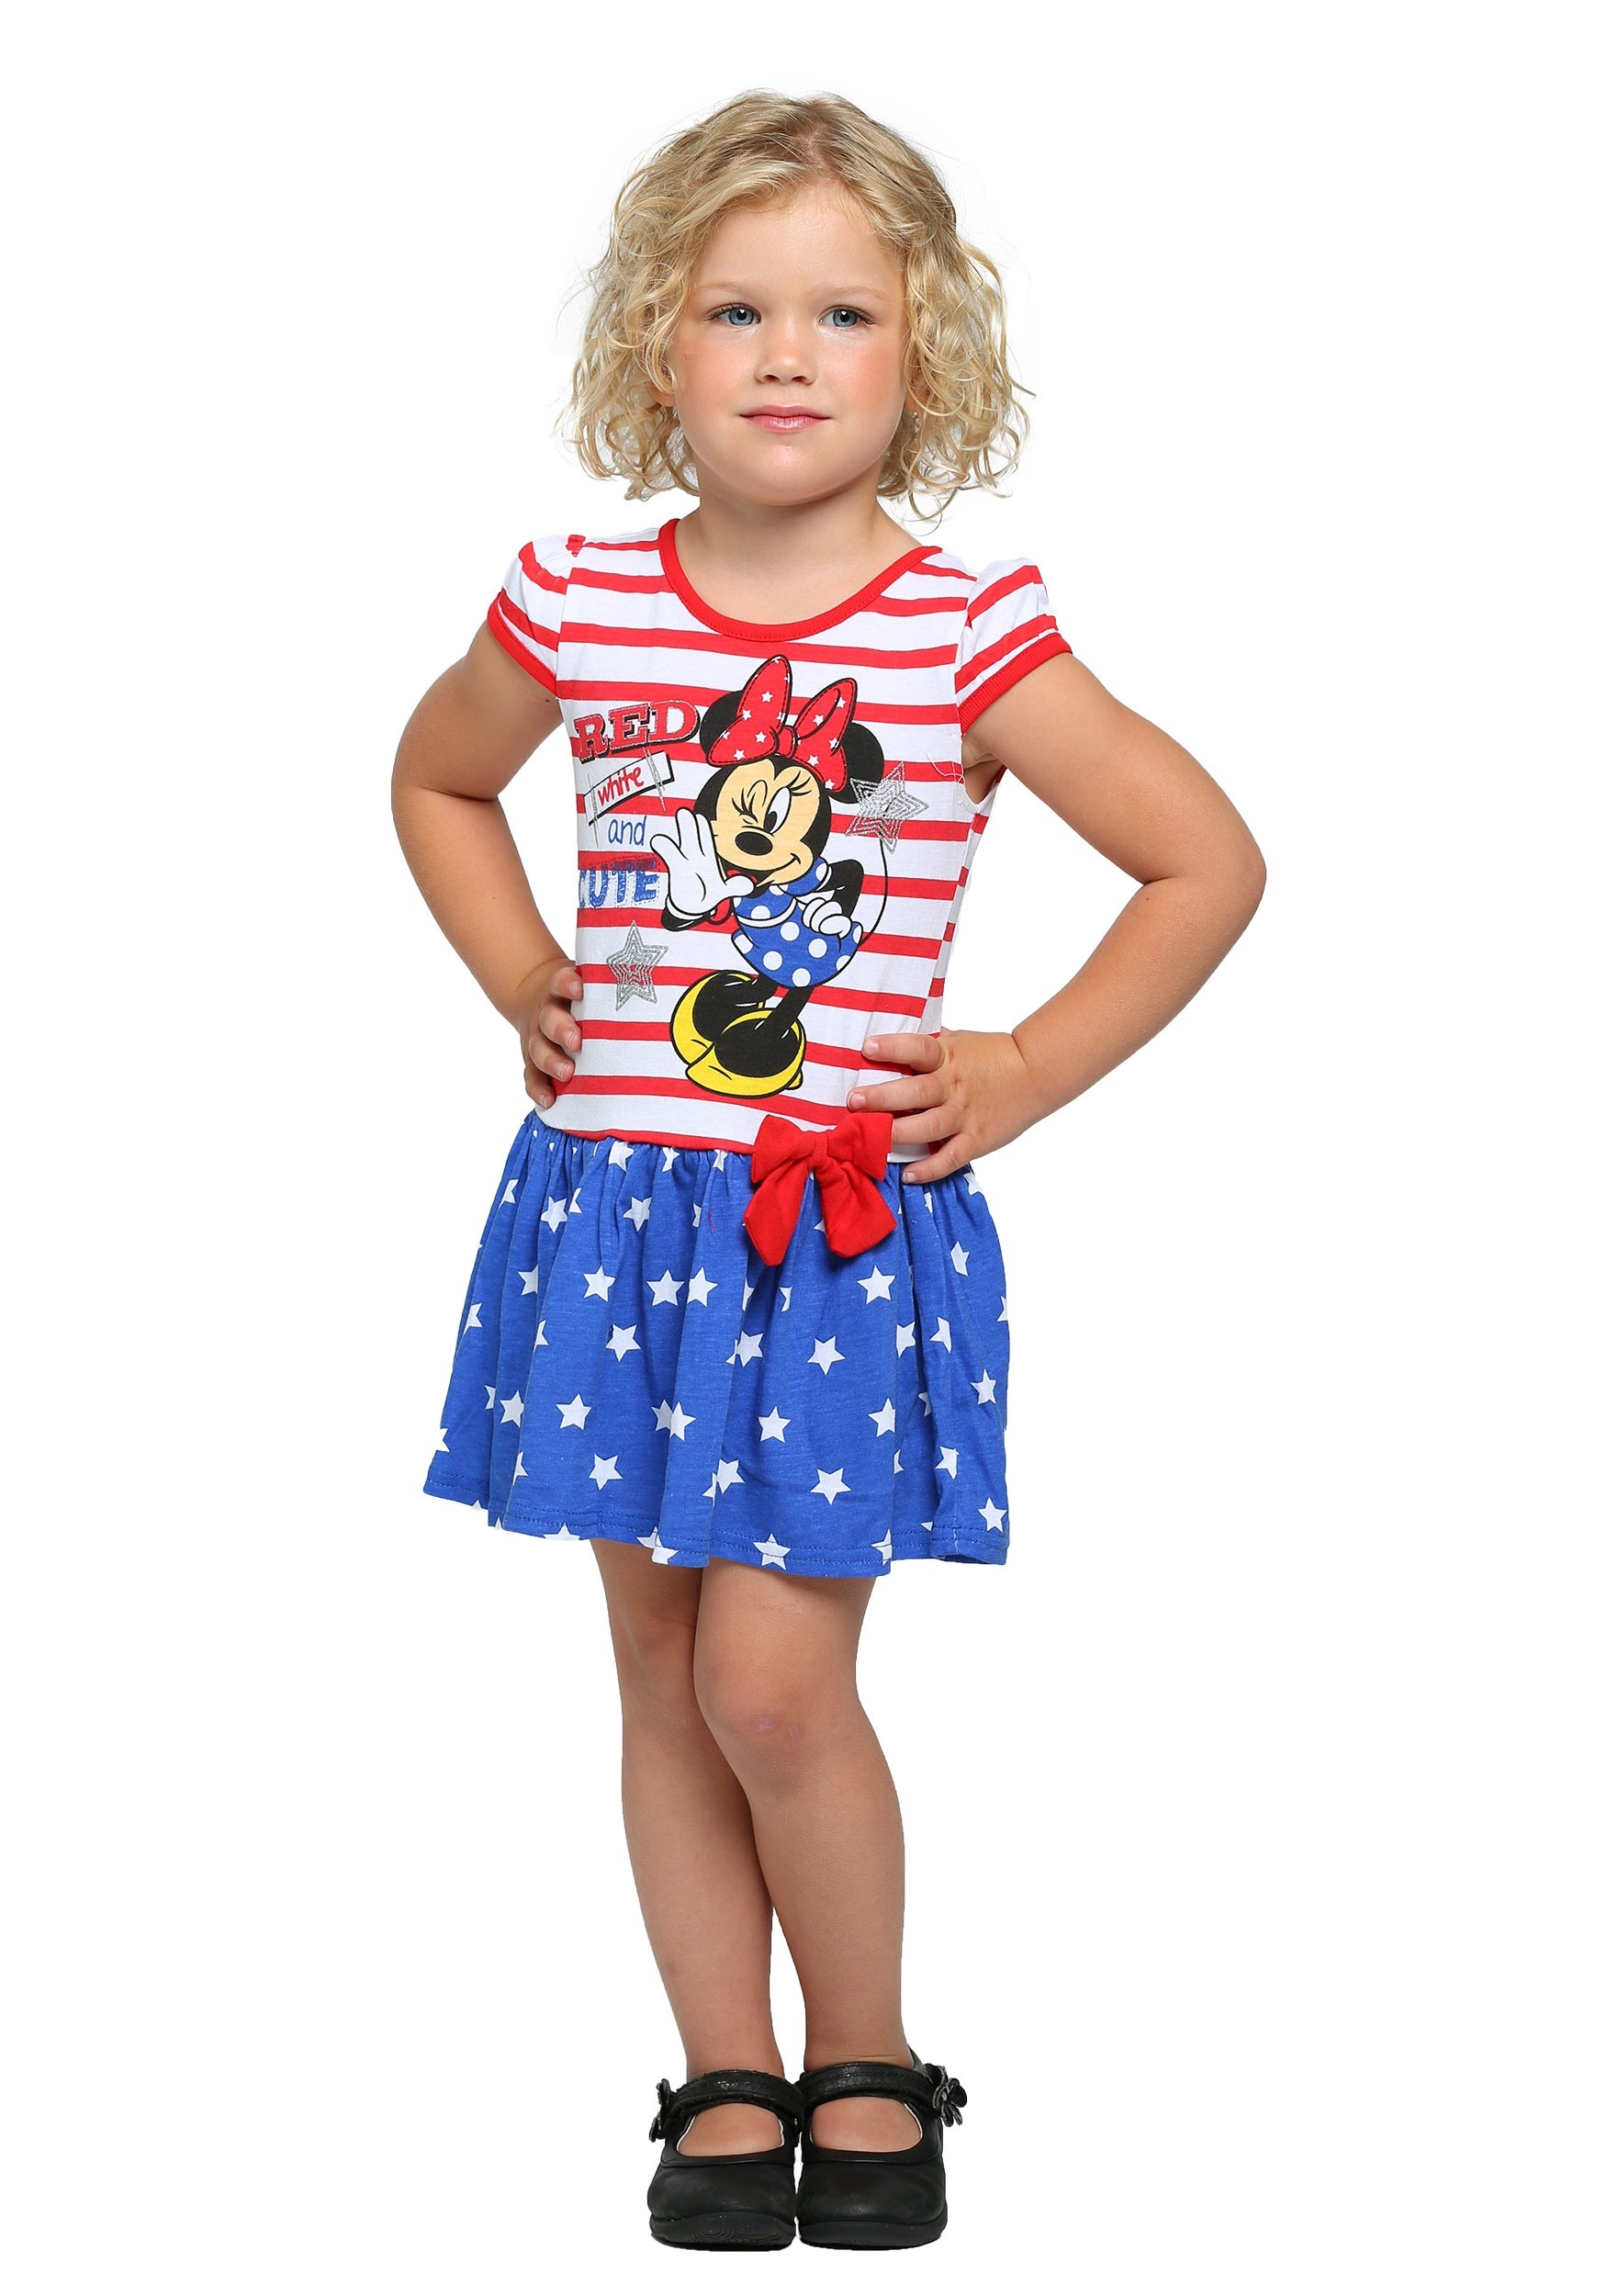 ed15740e7 Minnie Mouse Red White and Cute Girls Dress